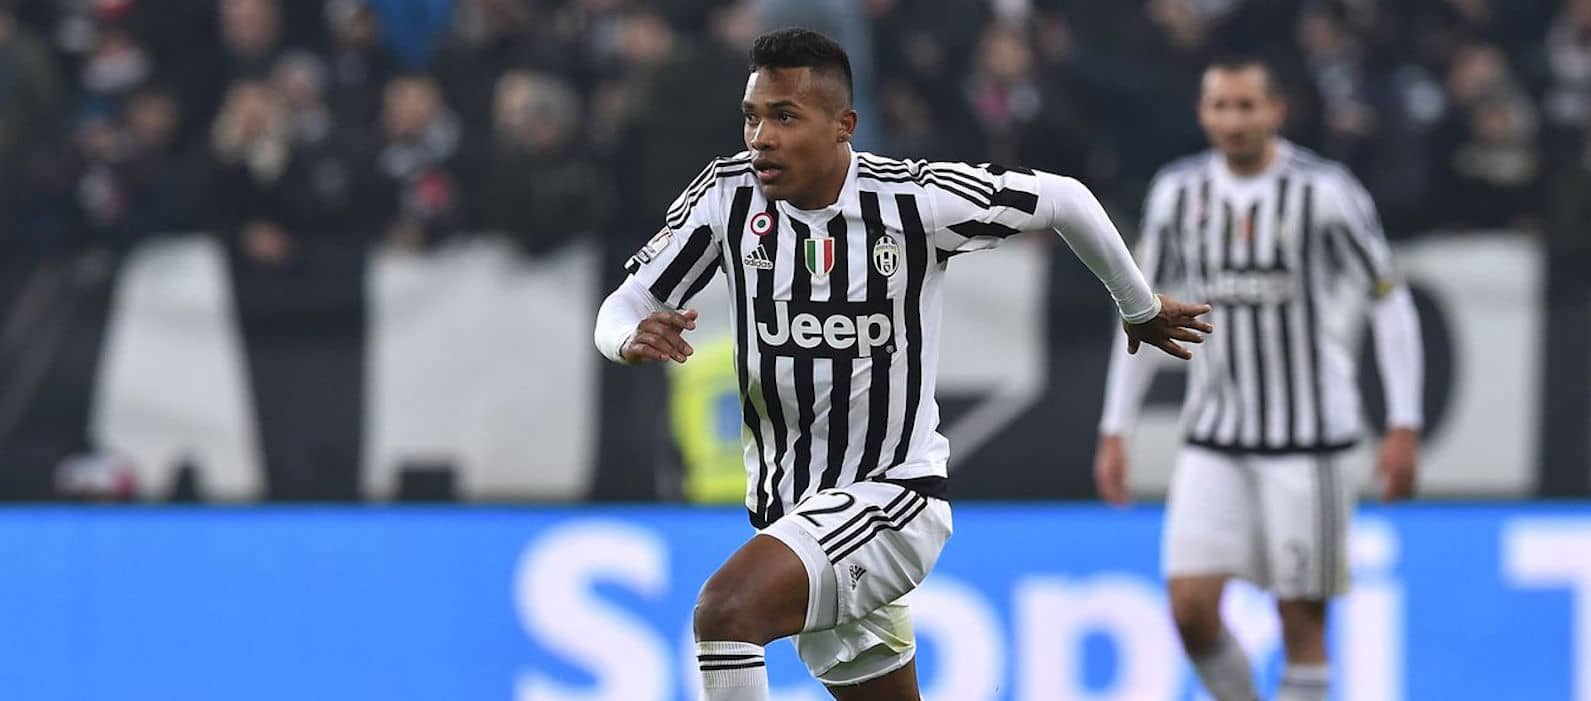 """Manchester United have a """"good chance"""" of signing Alex Sandro if they use Darmian as bait – report"""